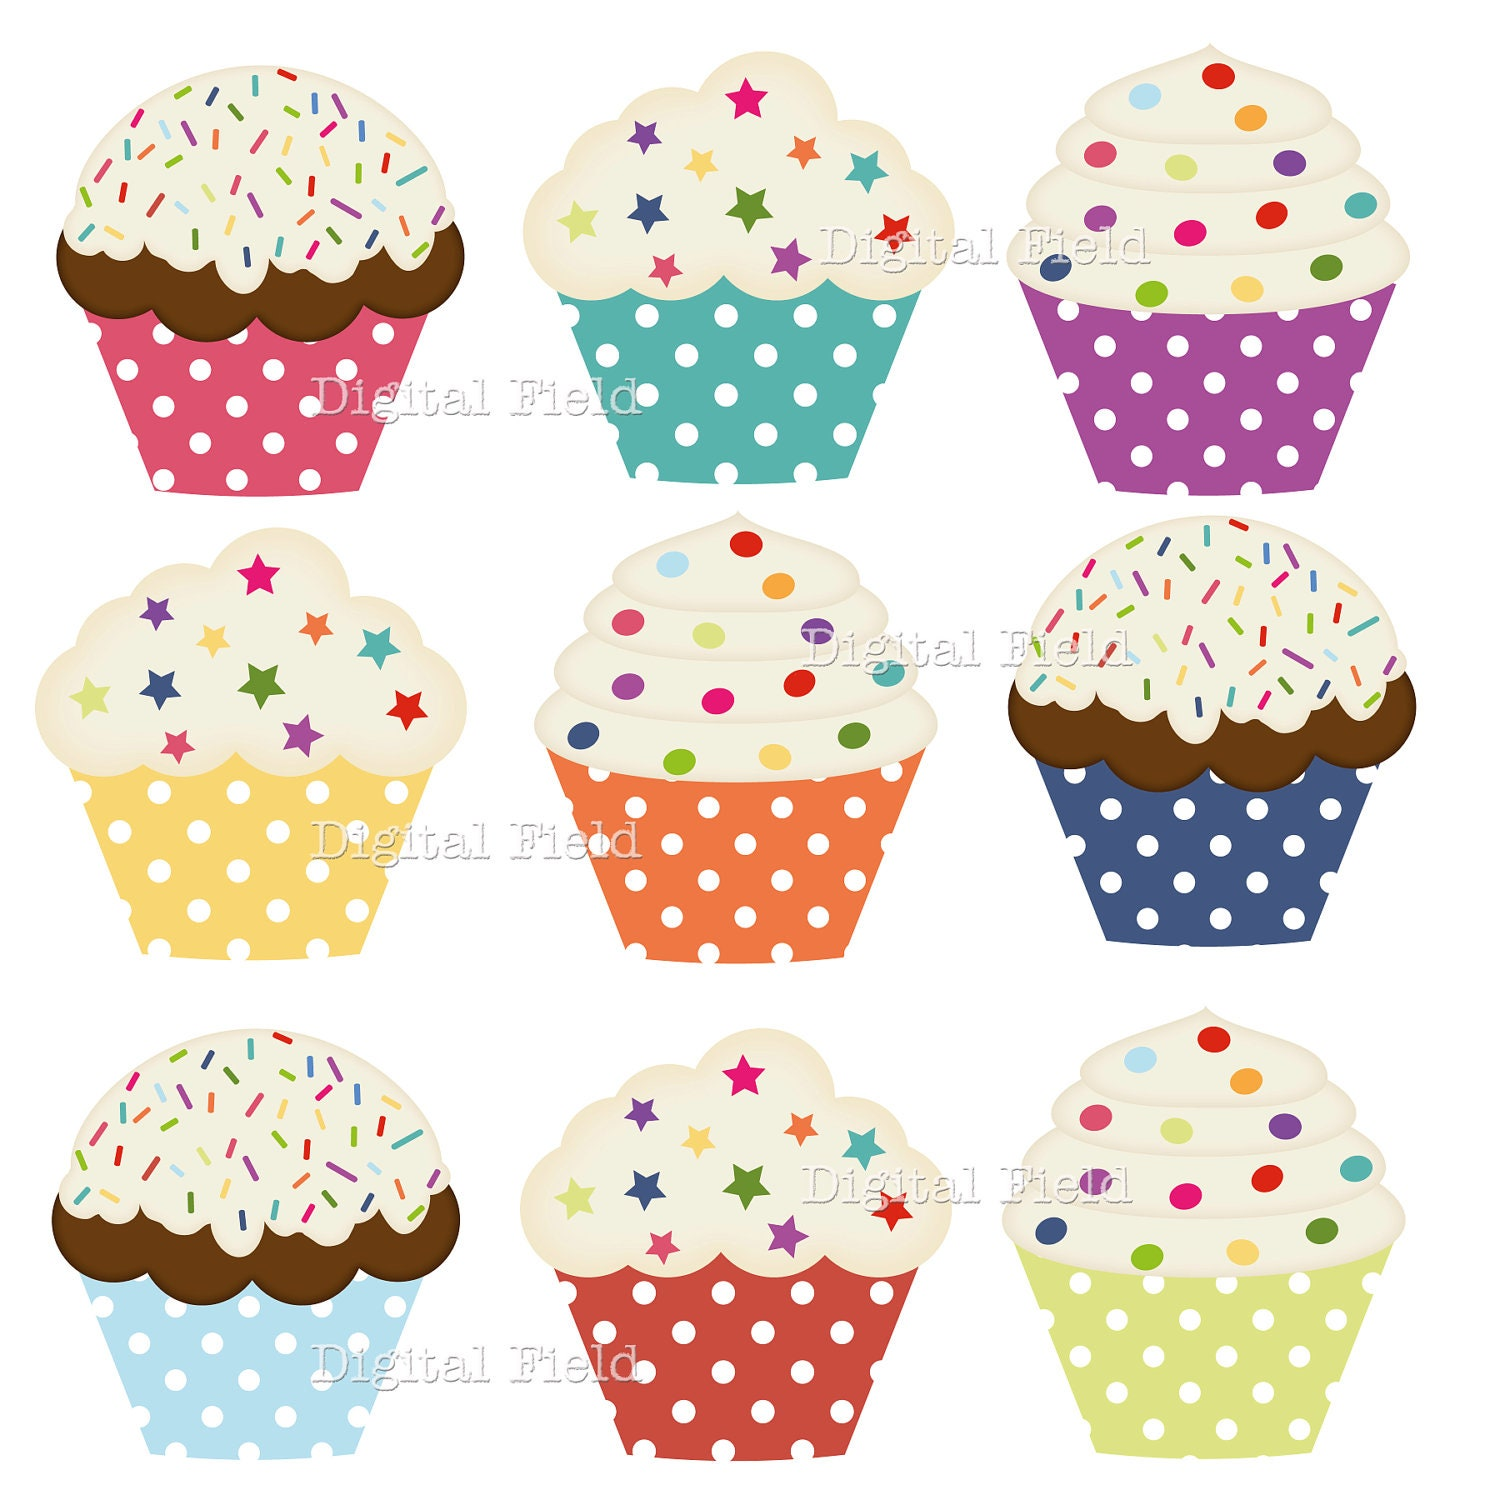 Free Printable Images Of Cupcakes : Polka Dot Cupcake Clip Art Set colorful printable digital